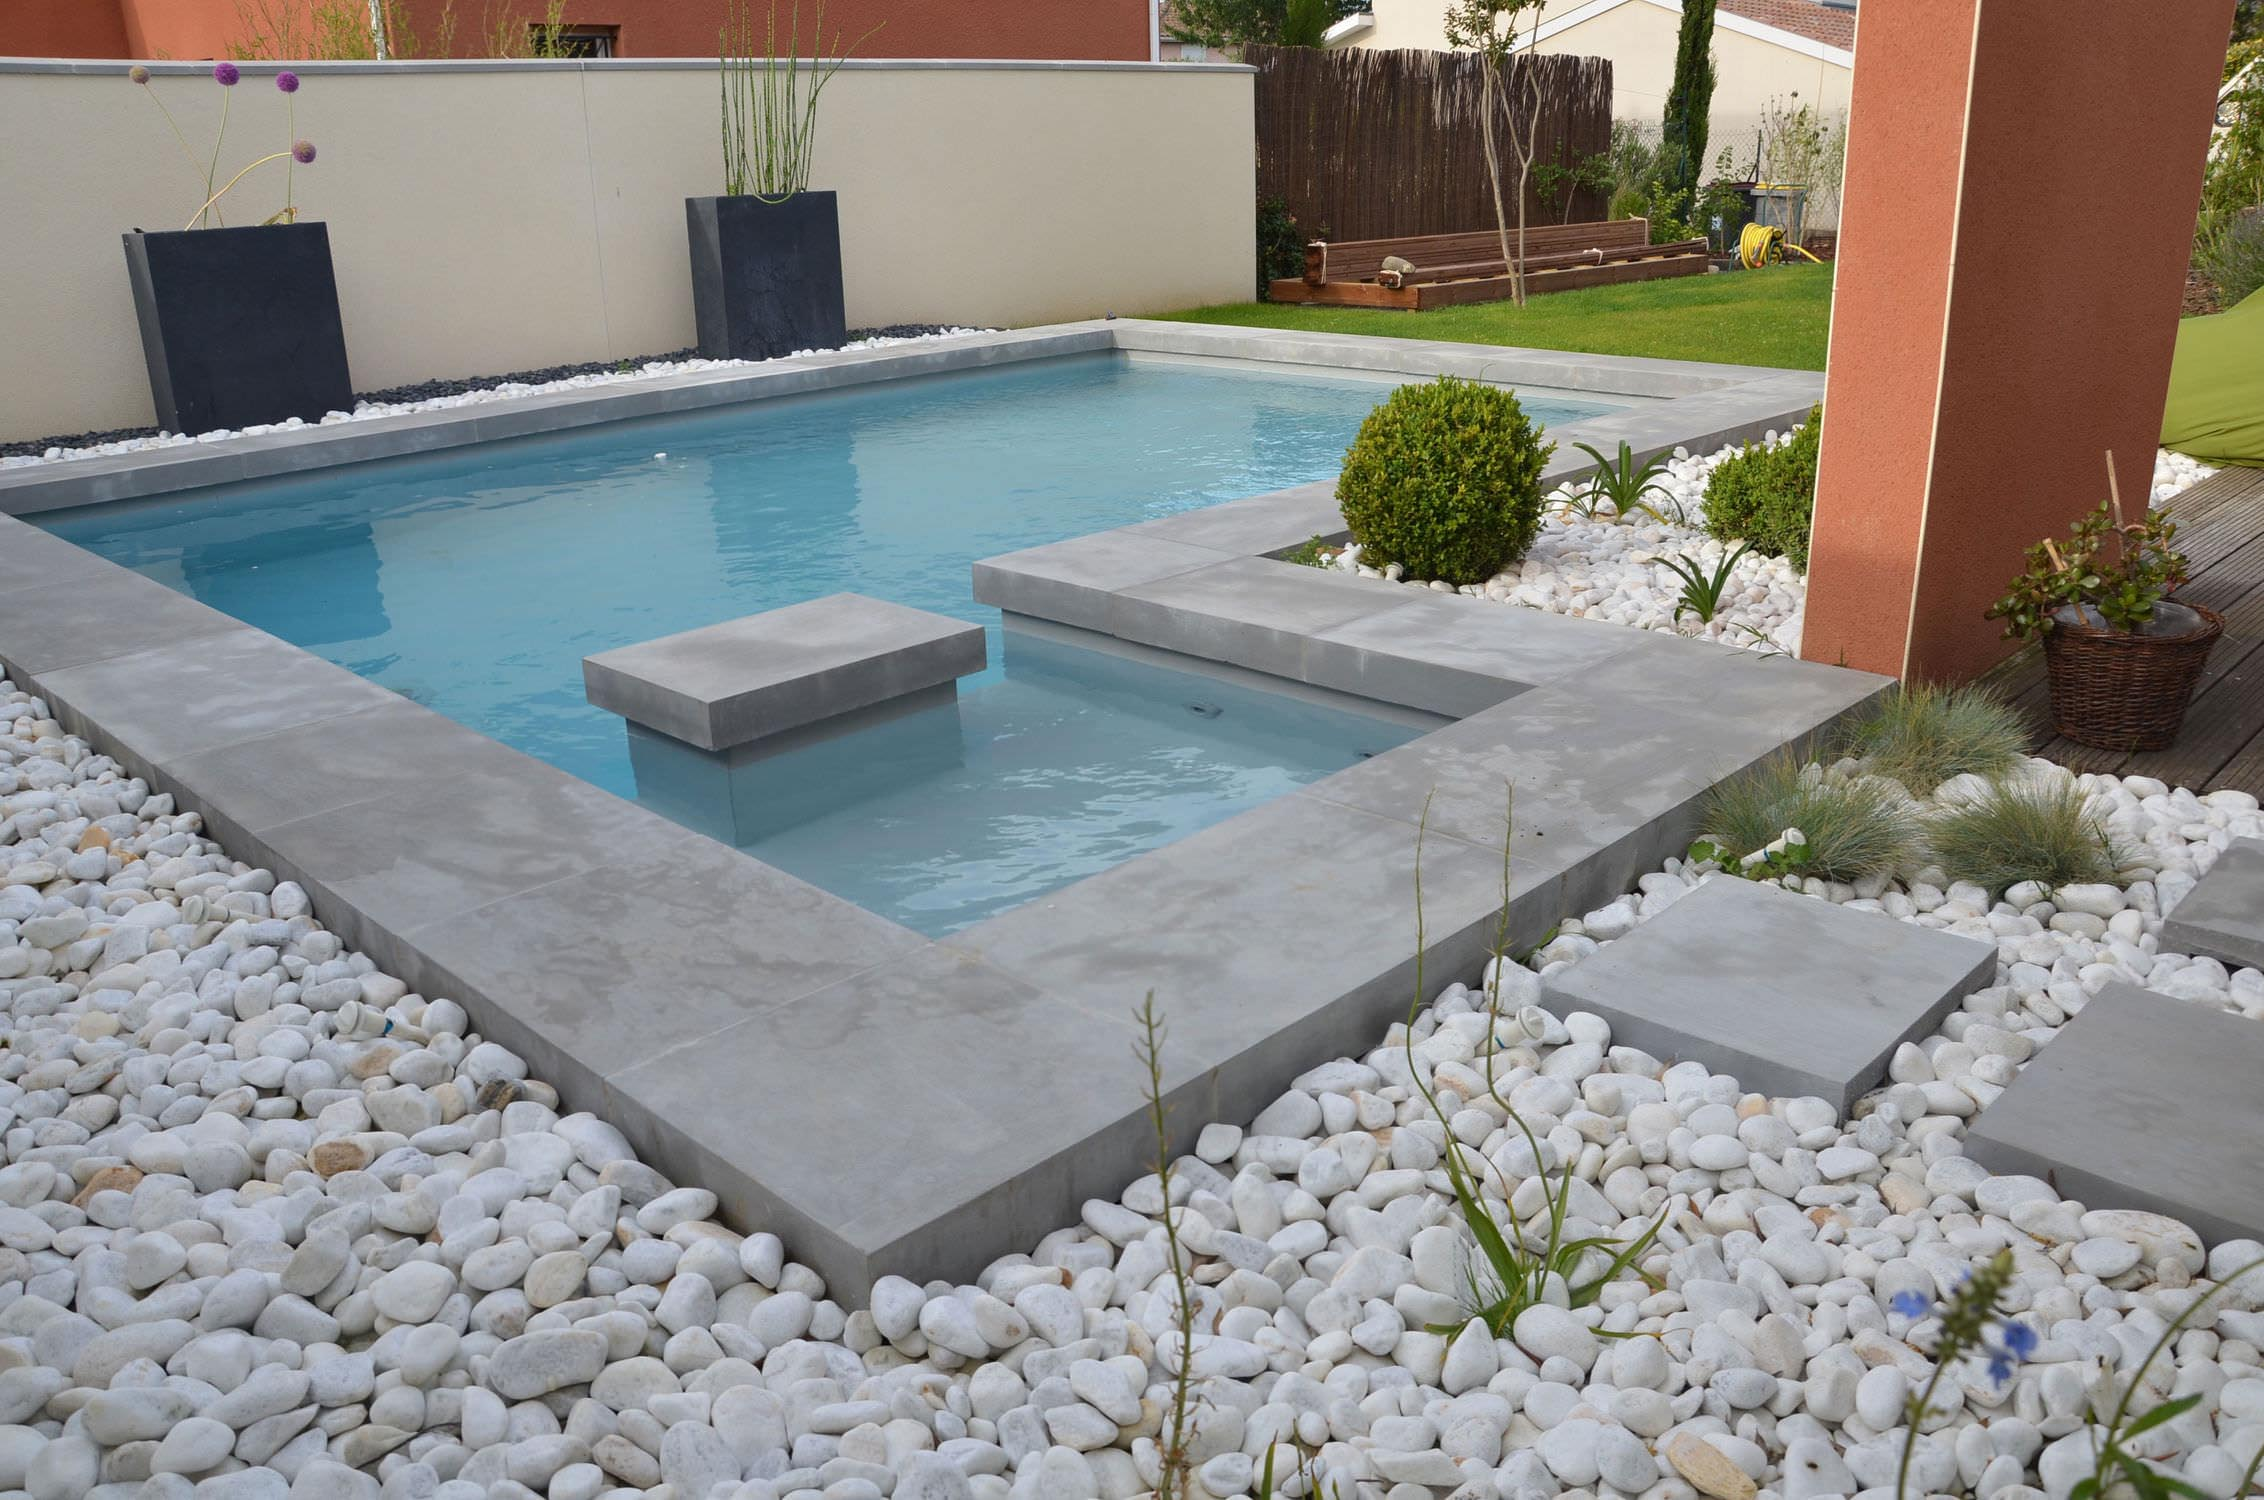 Concrete swimming pool coping backyard design ideas for Concrete swimming pool